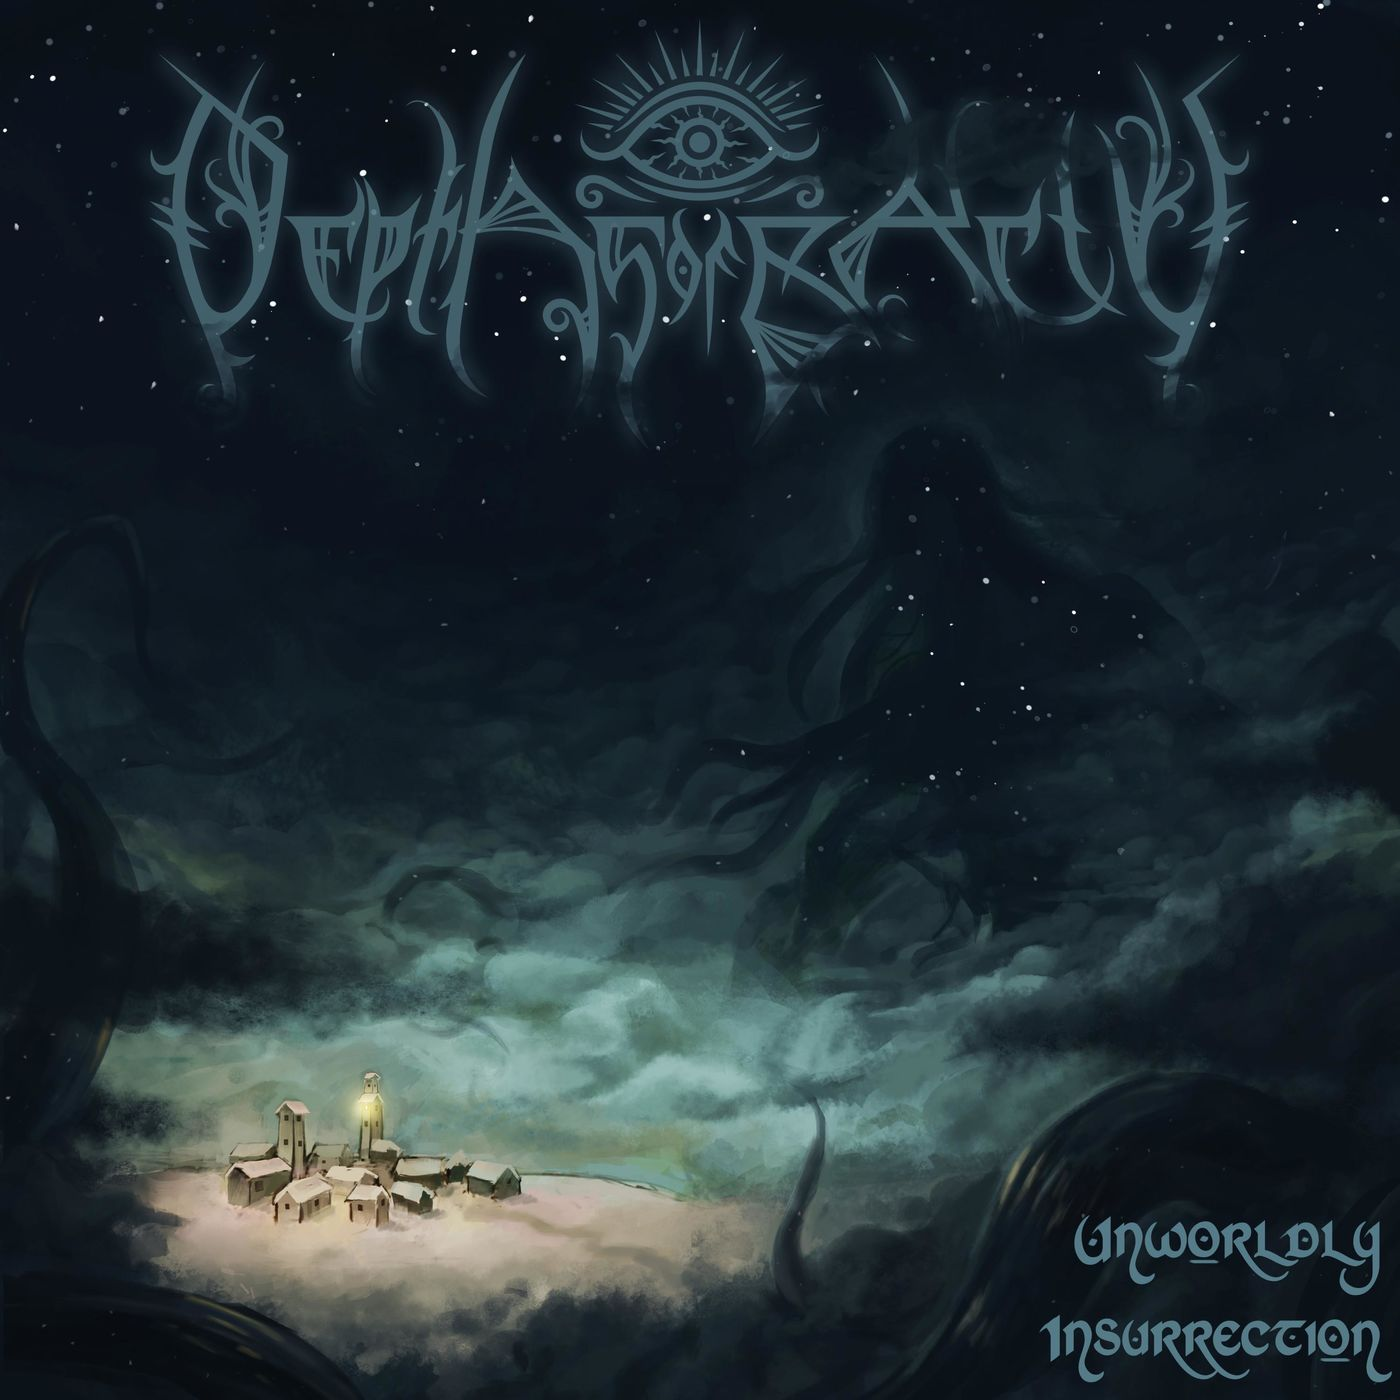 Depths of Baciu – Unworldly Insurrection (2019)